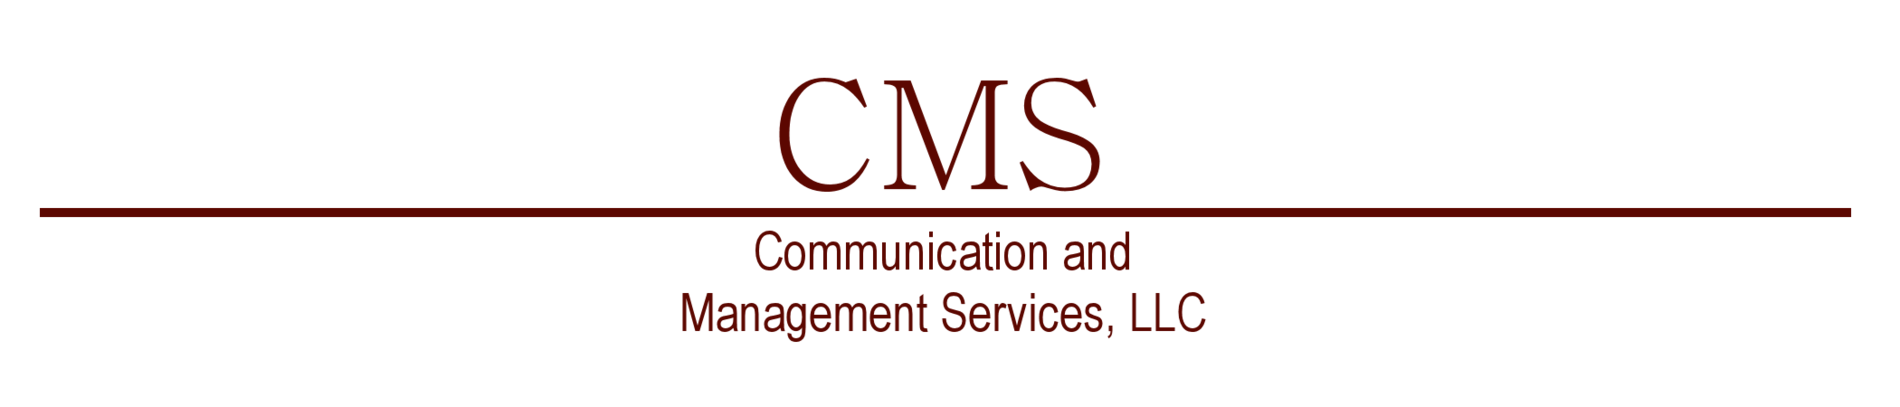 About-CMS